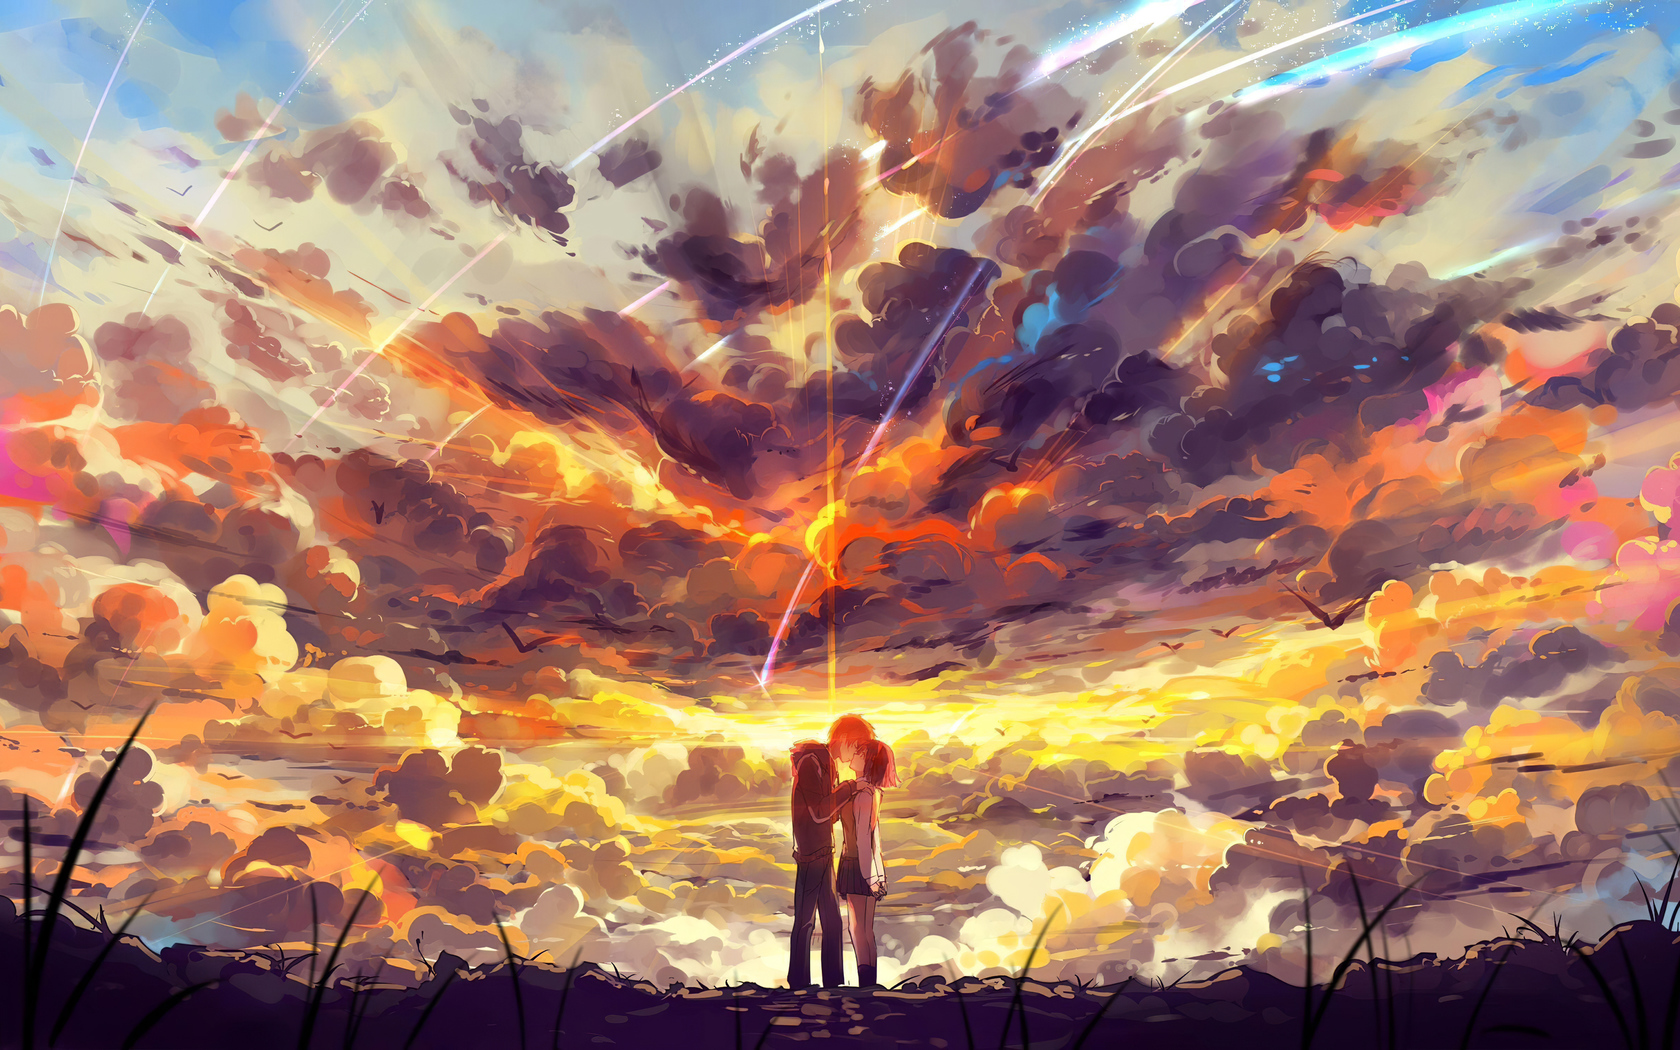 Kimi No Na Wa Painting , HD Wallpaper & Backgrounds